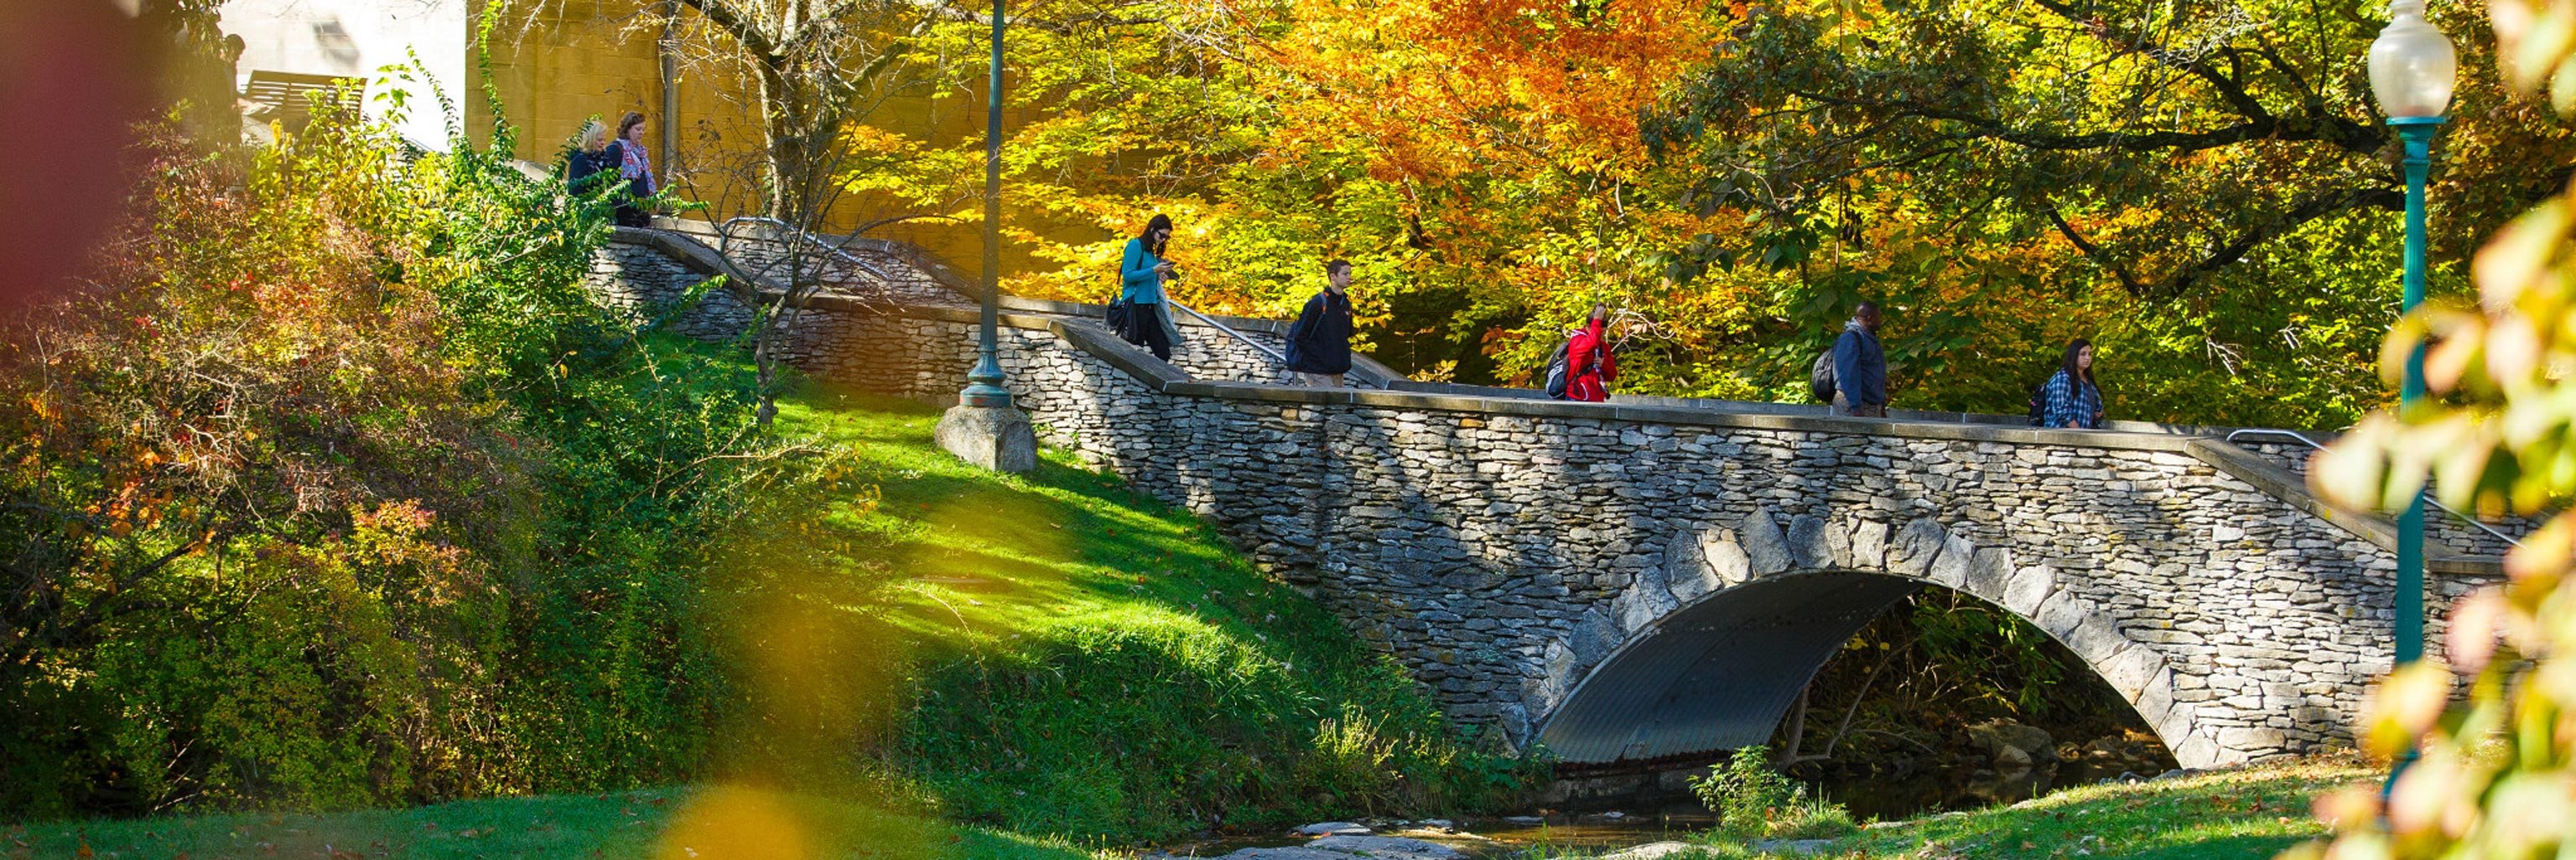 stone bridge with students walking up and down the bridge